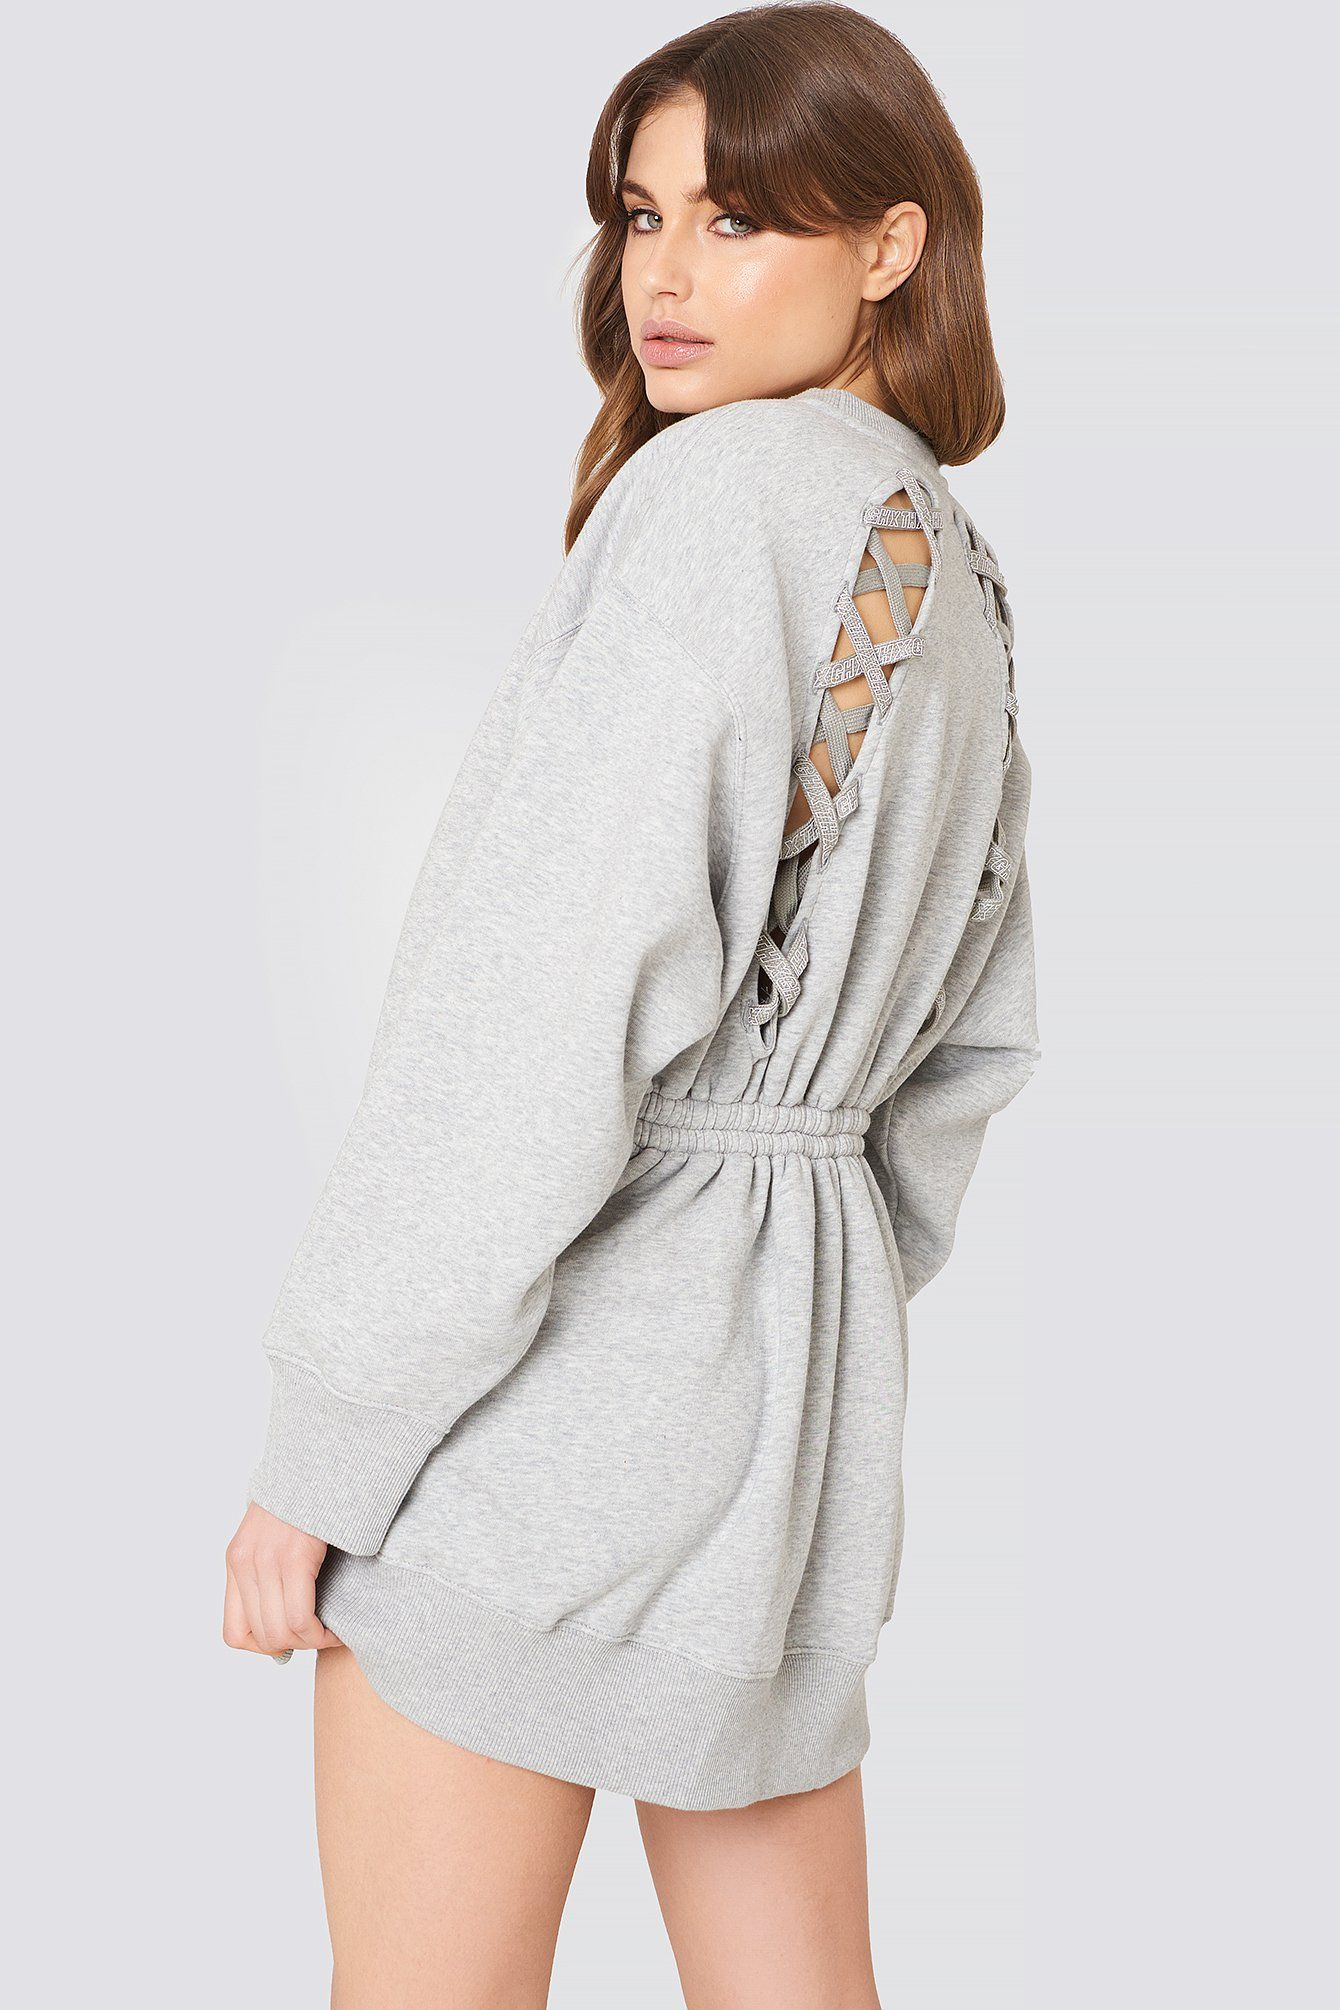 061e631d673 TOMMY HILFIGER GIGI HADID OPEN BACK LS SWEATSHIRT DRESS - GREY.   tommyhilfiger  cloth